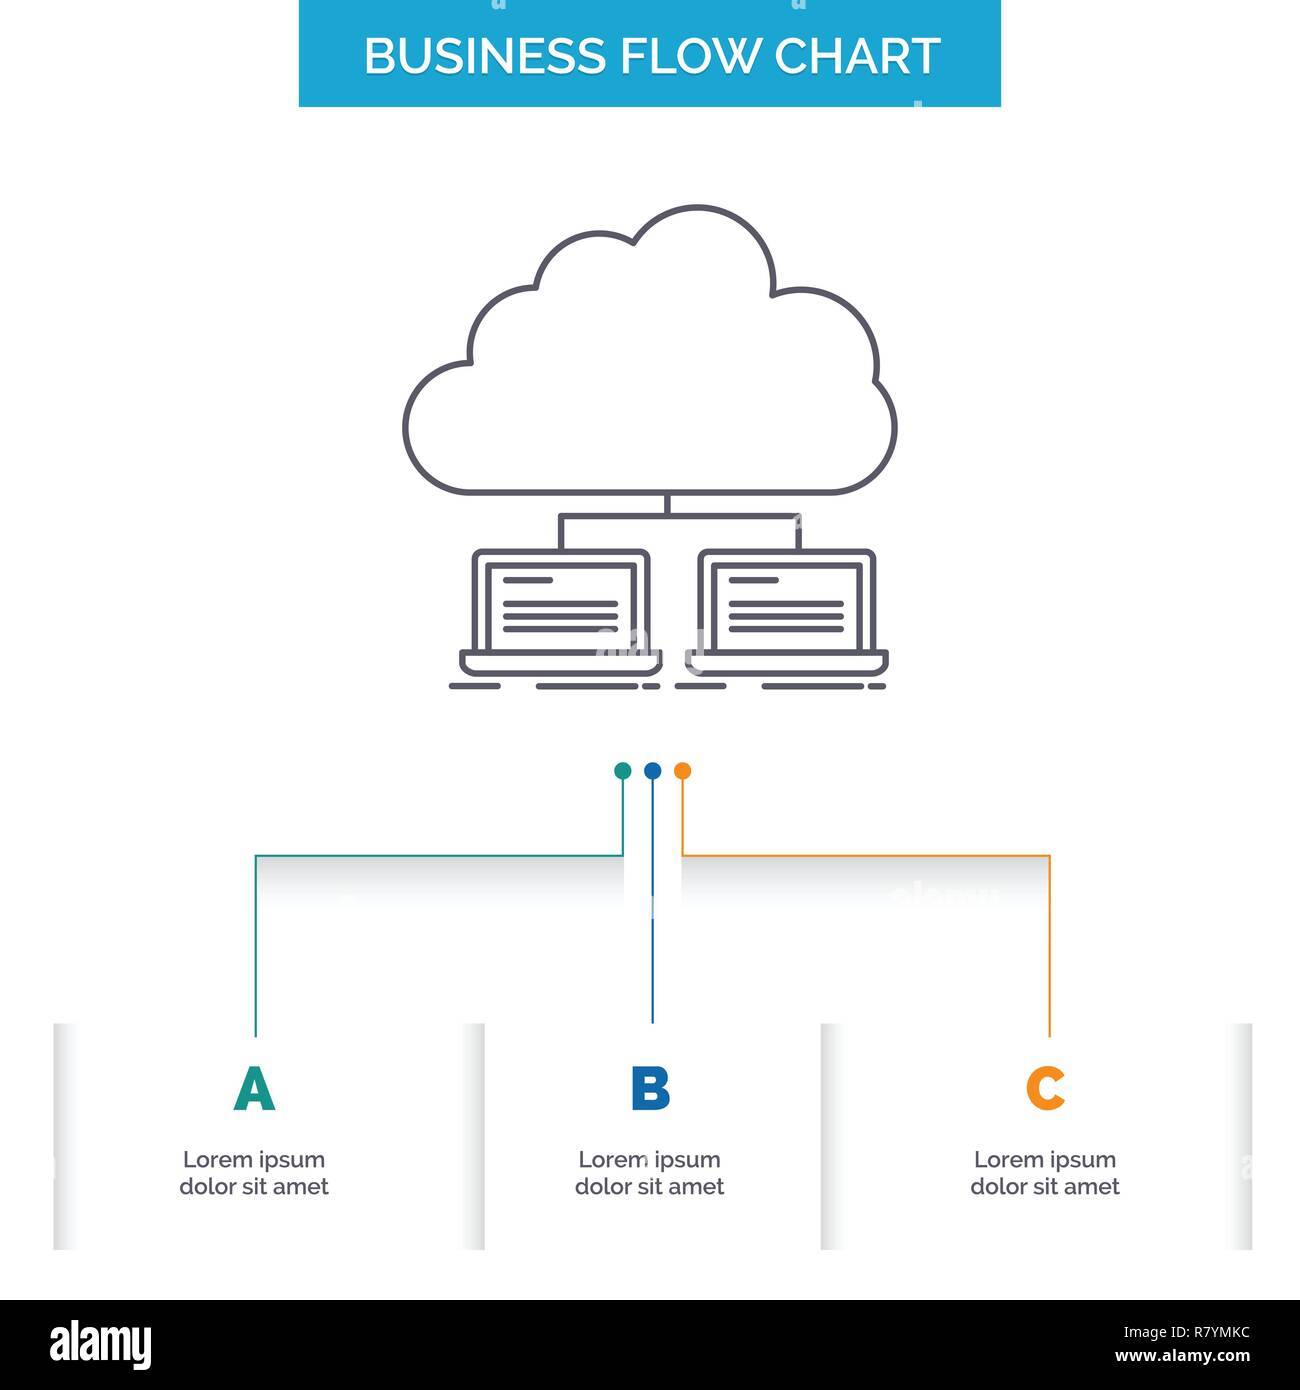 hight resolution of cloud network server internet data business flow chart design with 3 steps line icon for presentation background template place for text